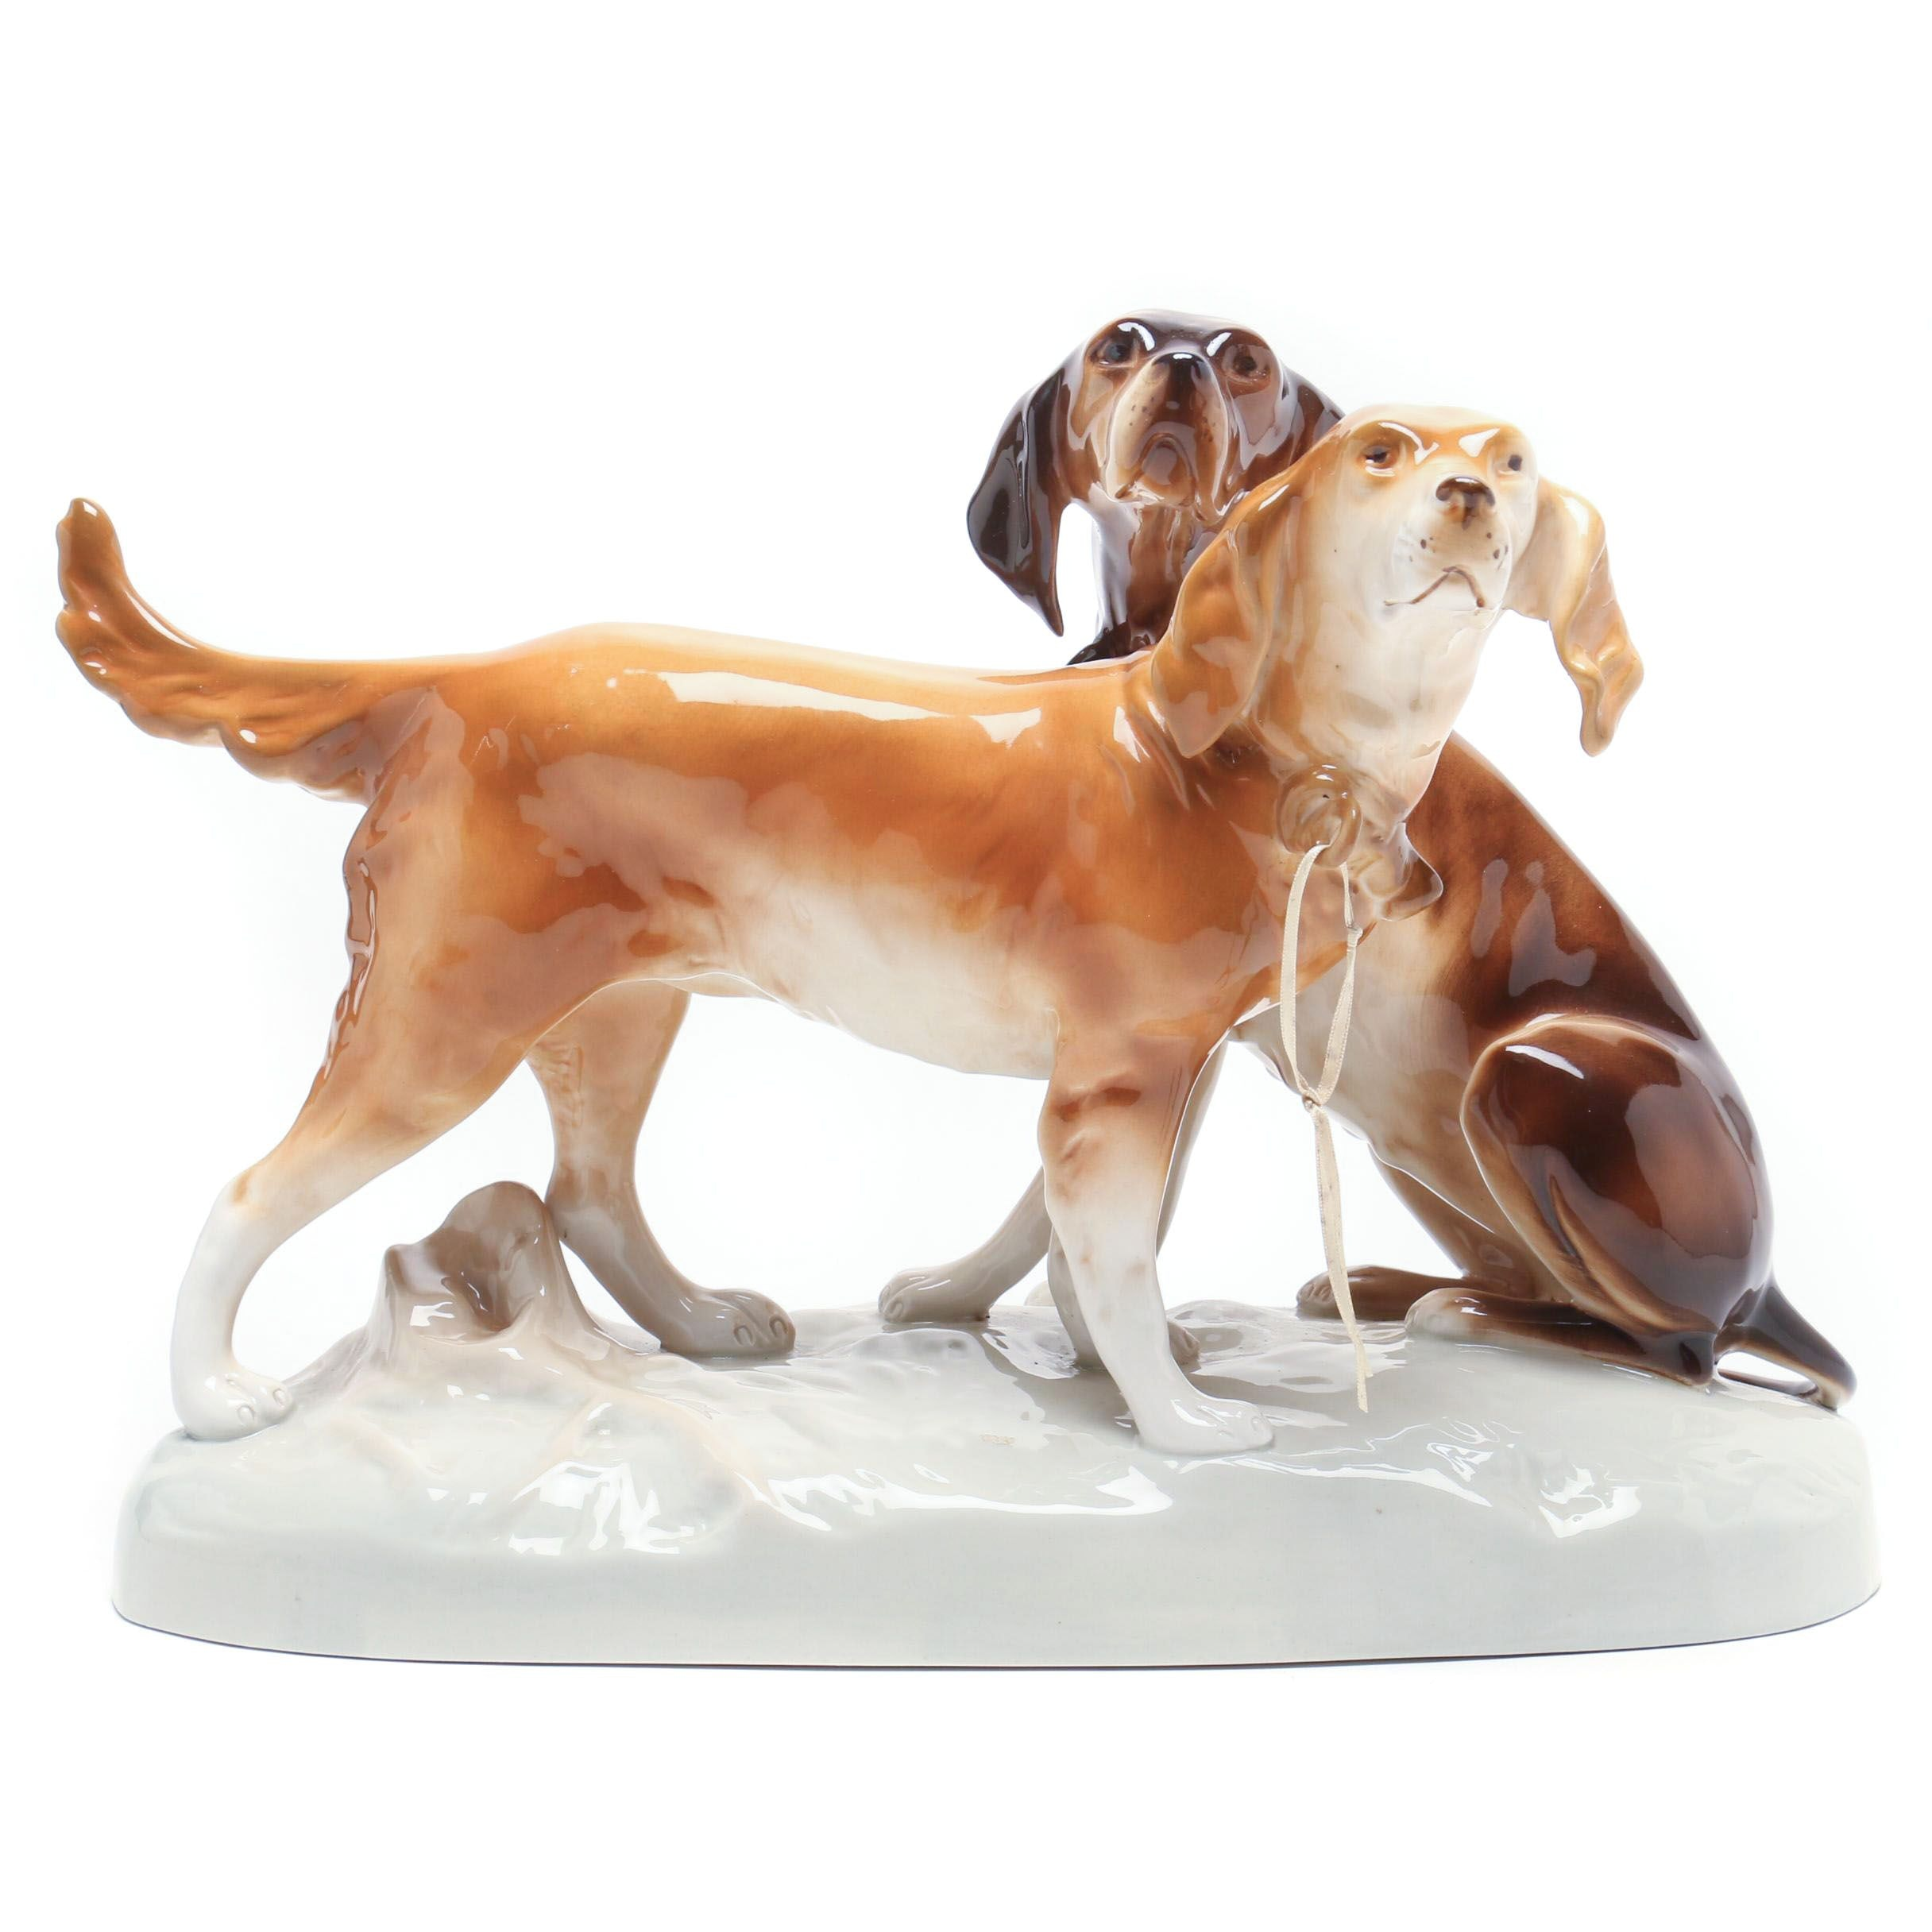 Czech Royal Dux Porcelain Duo Hunting Dogs Figurine with Setter and Pointer